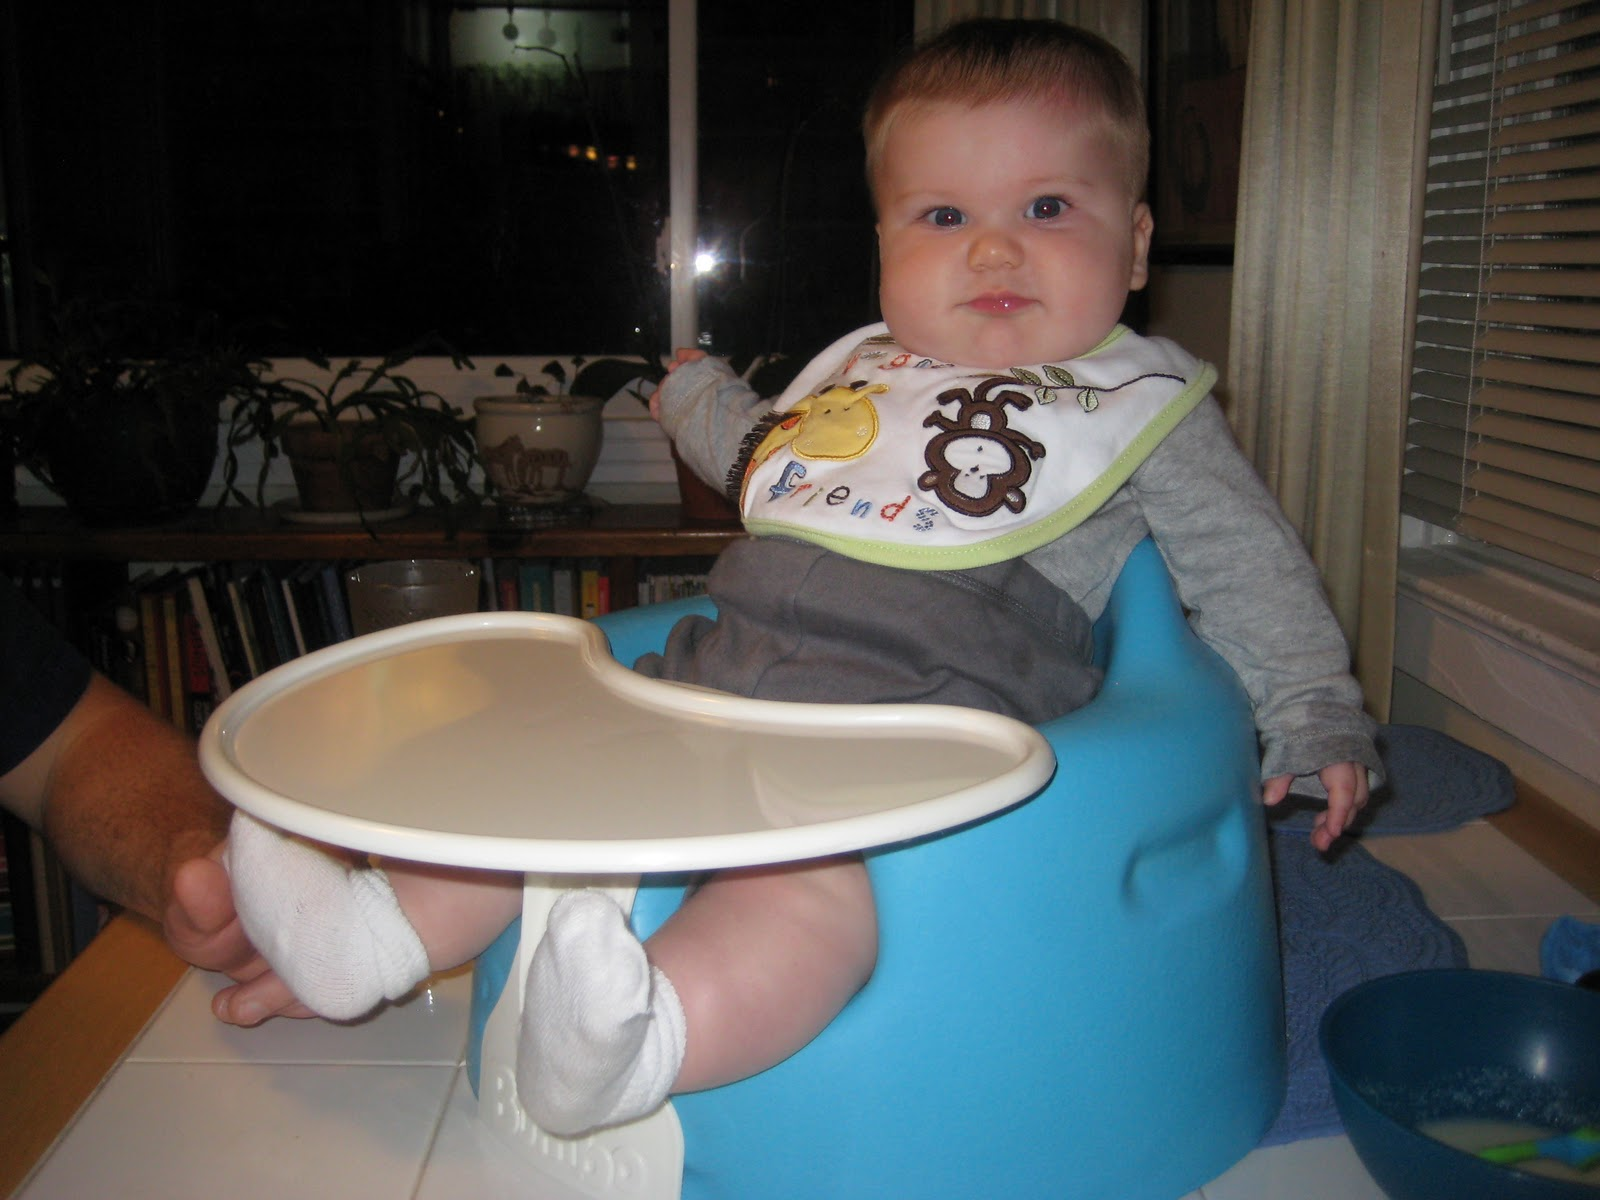 Bumbo Chair Recall Bumbo Seat Recalled After Skull Fracture Reports